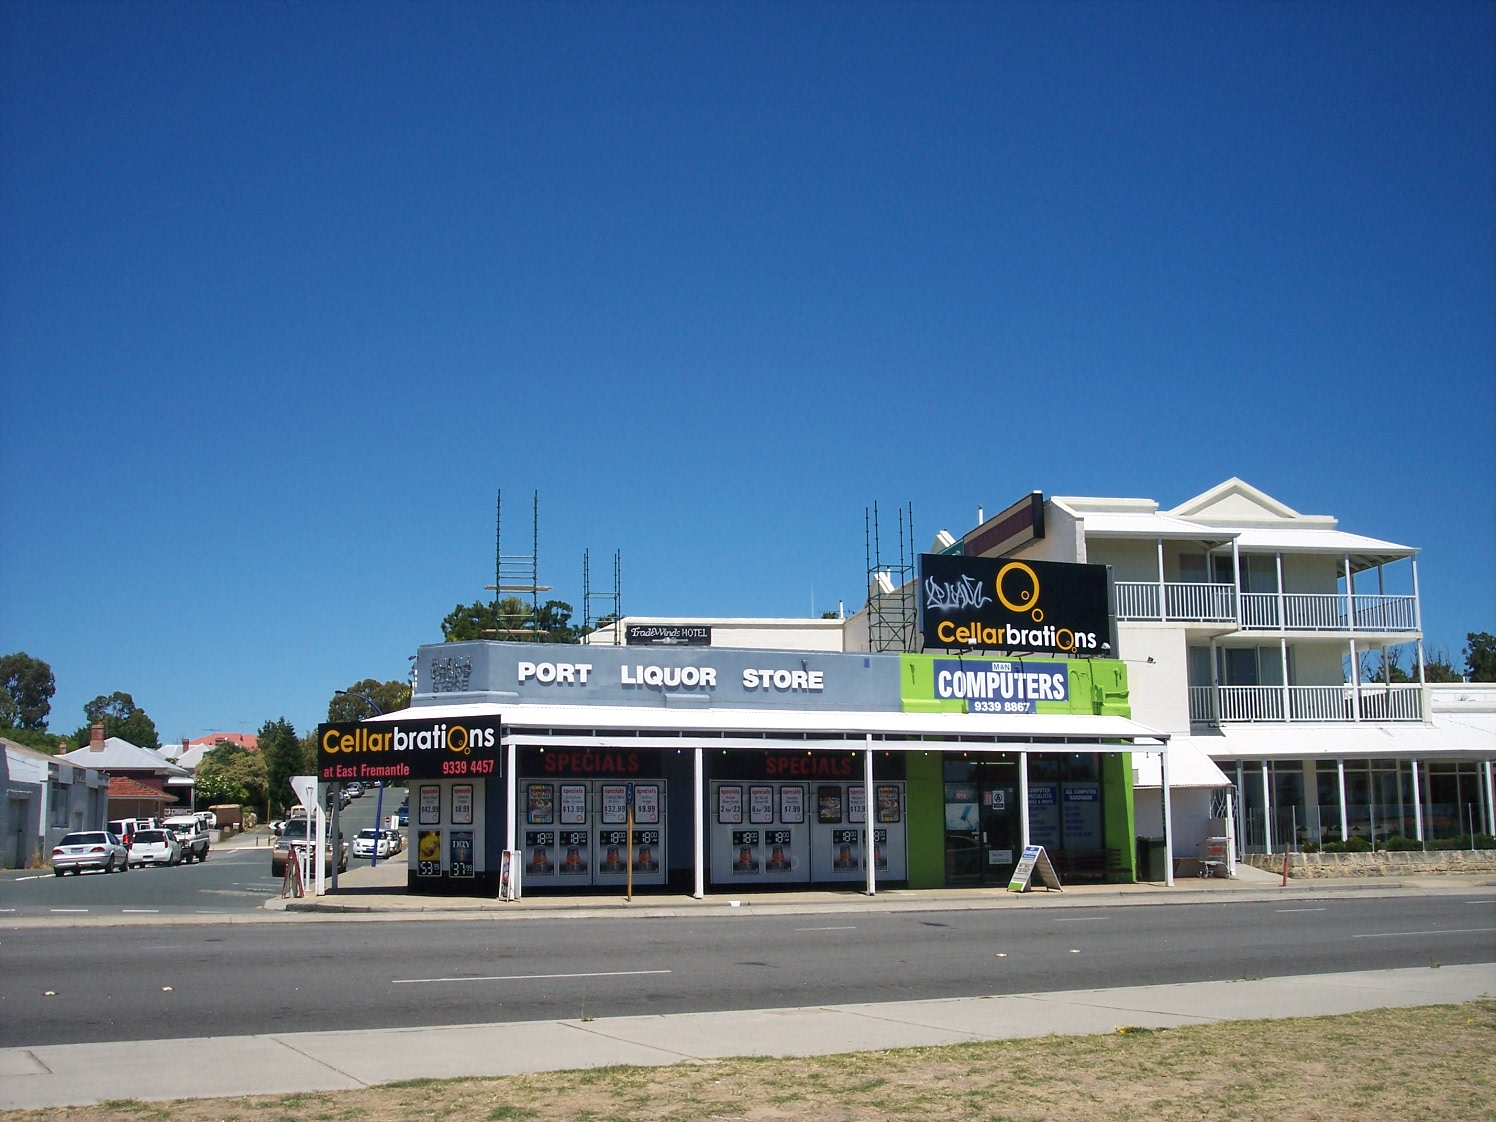 26-2-08 View S3 83 Canning Highway.jpg